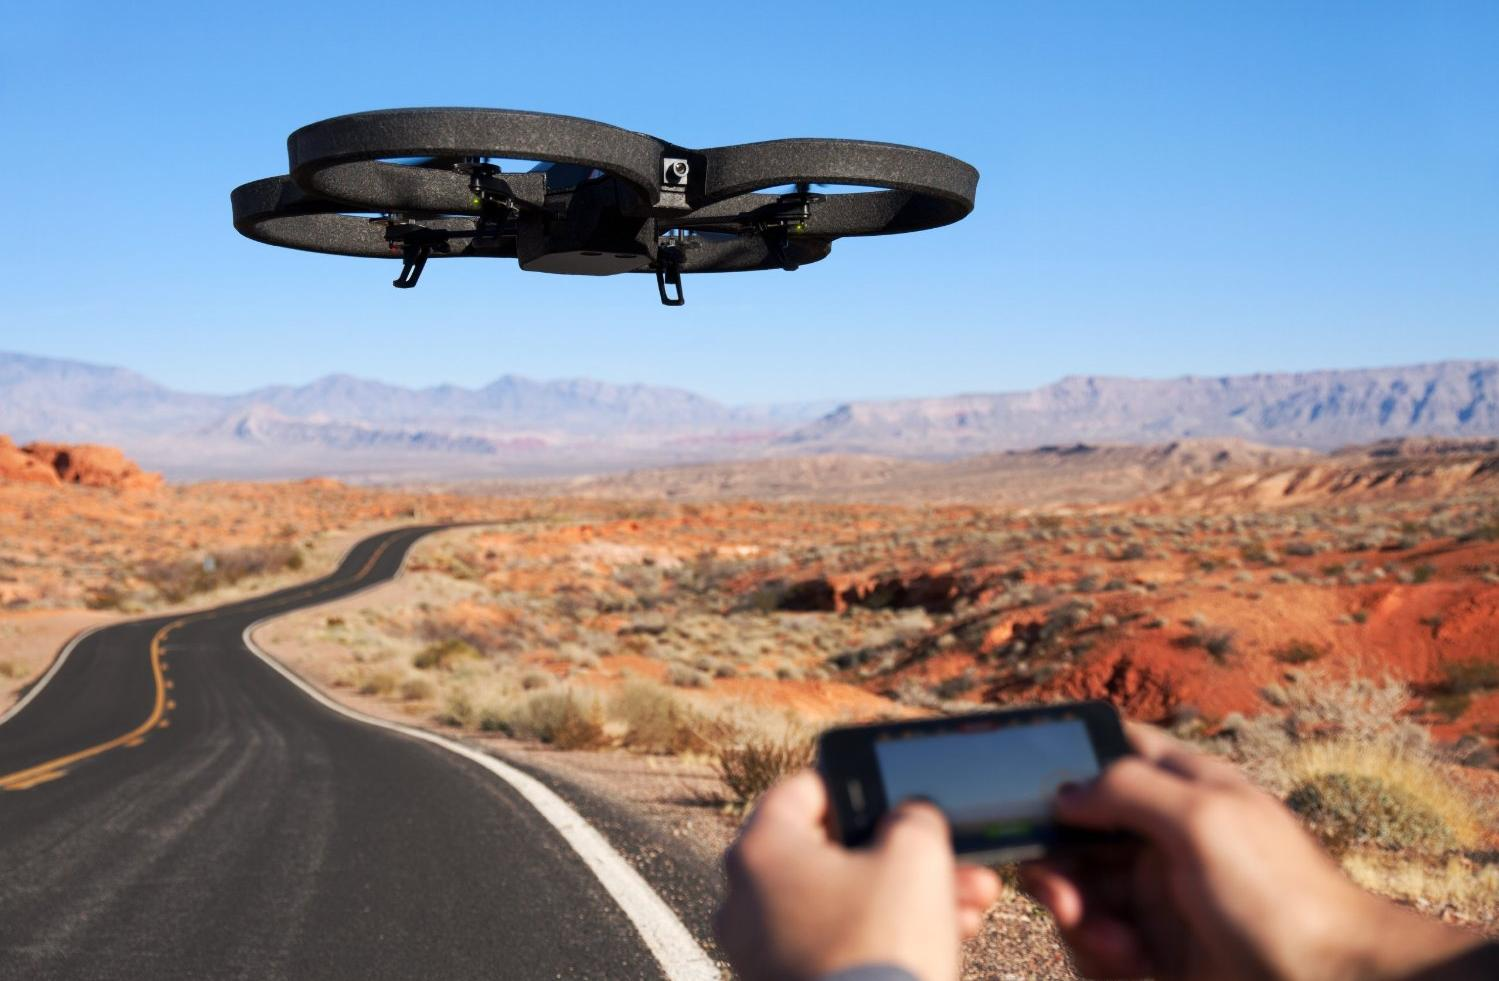 Die AR.Drone 2.0 beim Starten. (Foto: Parrot)